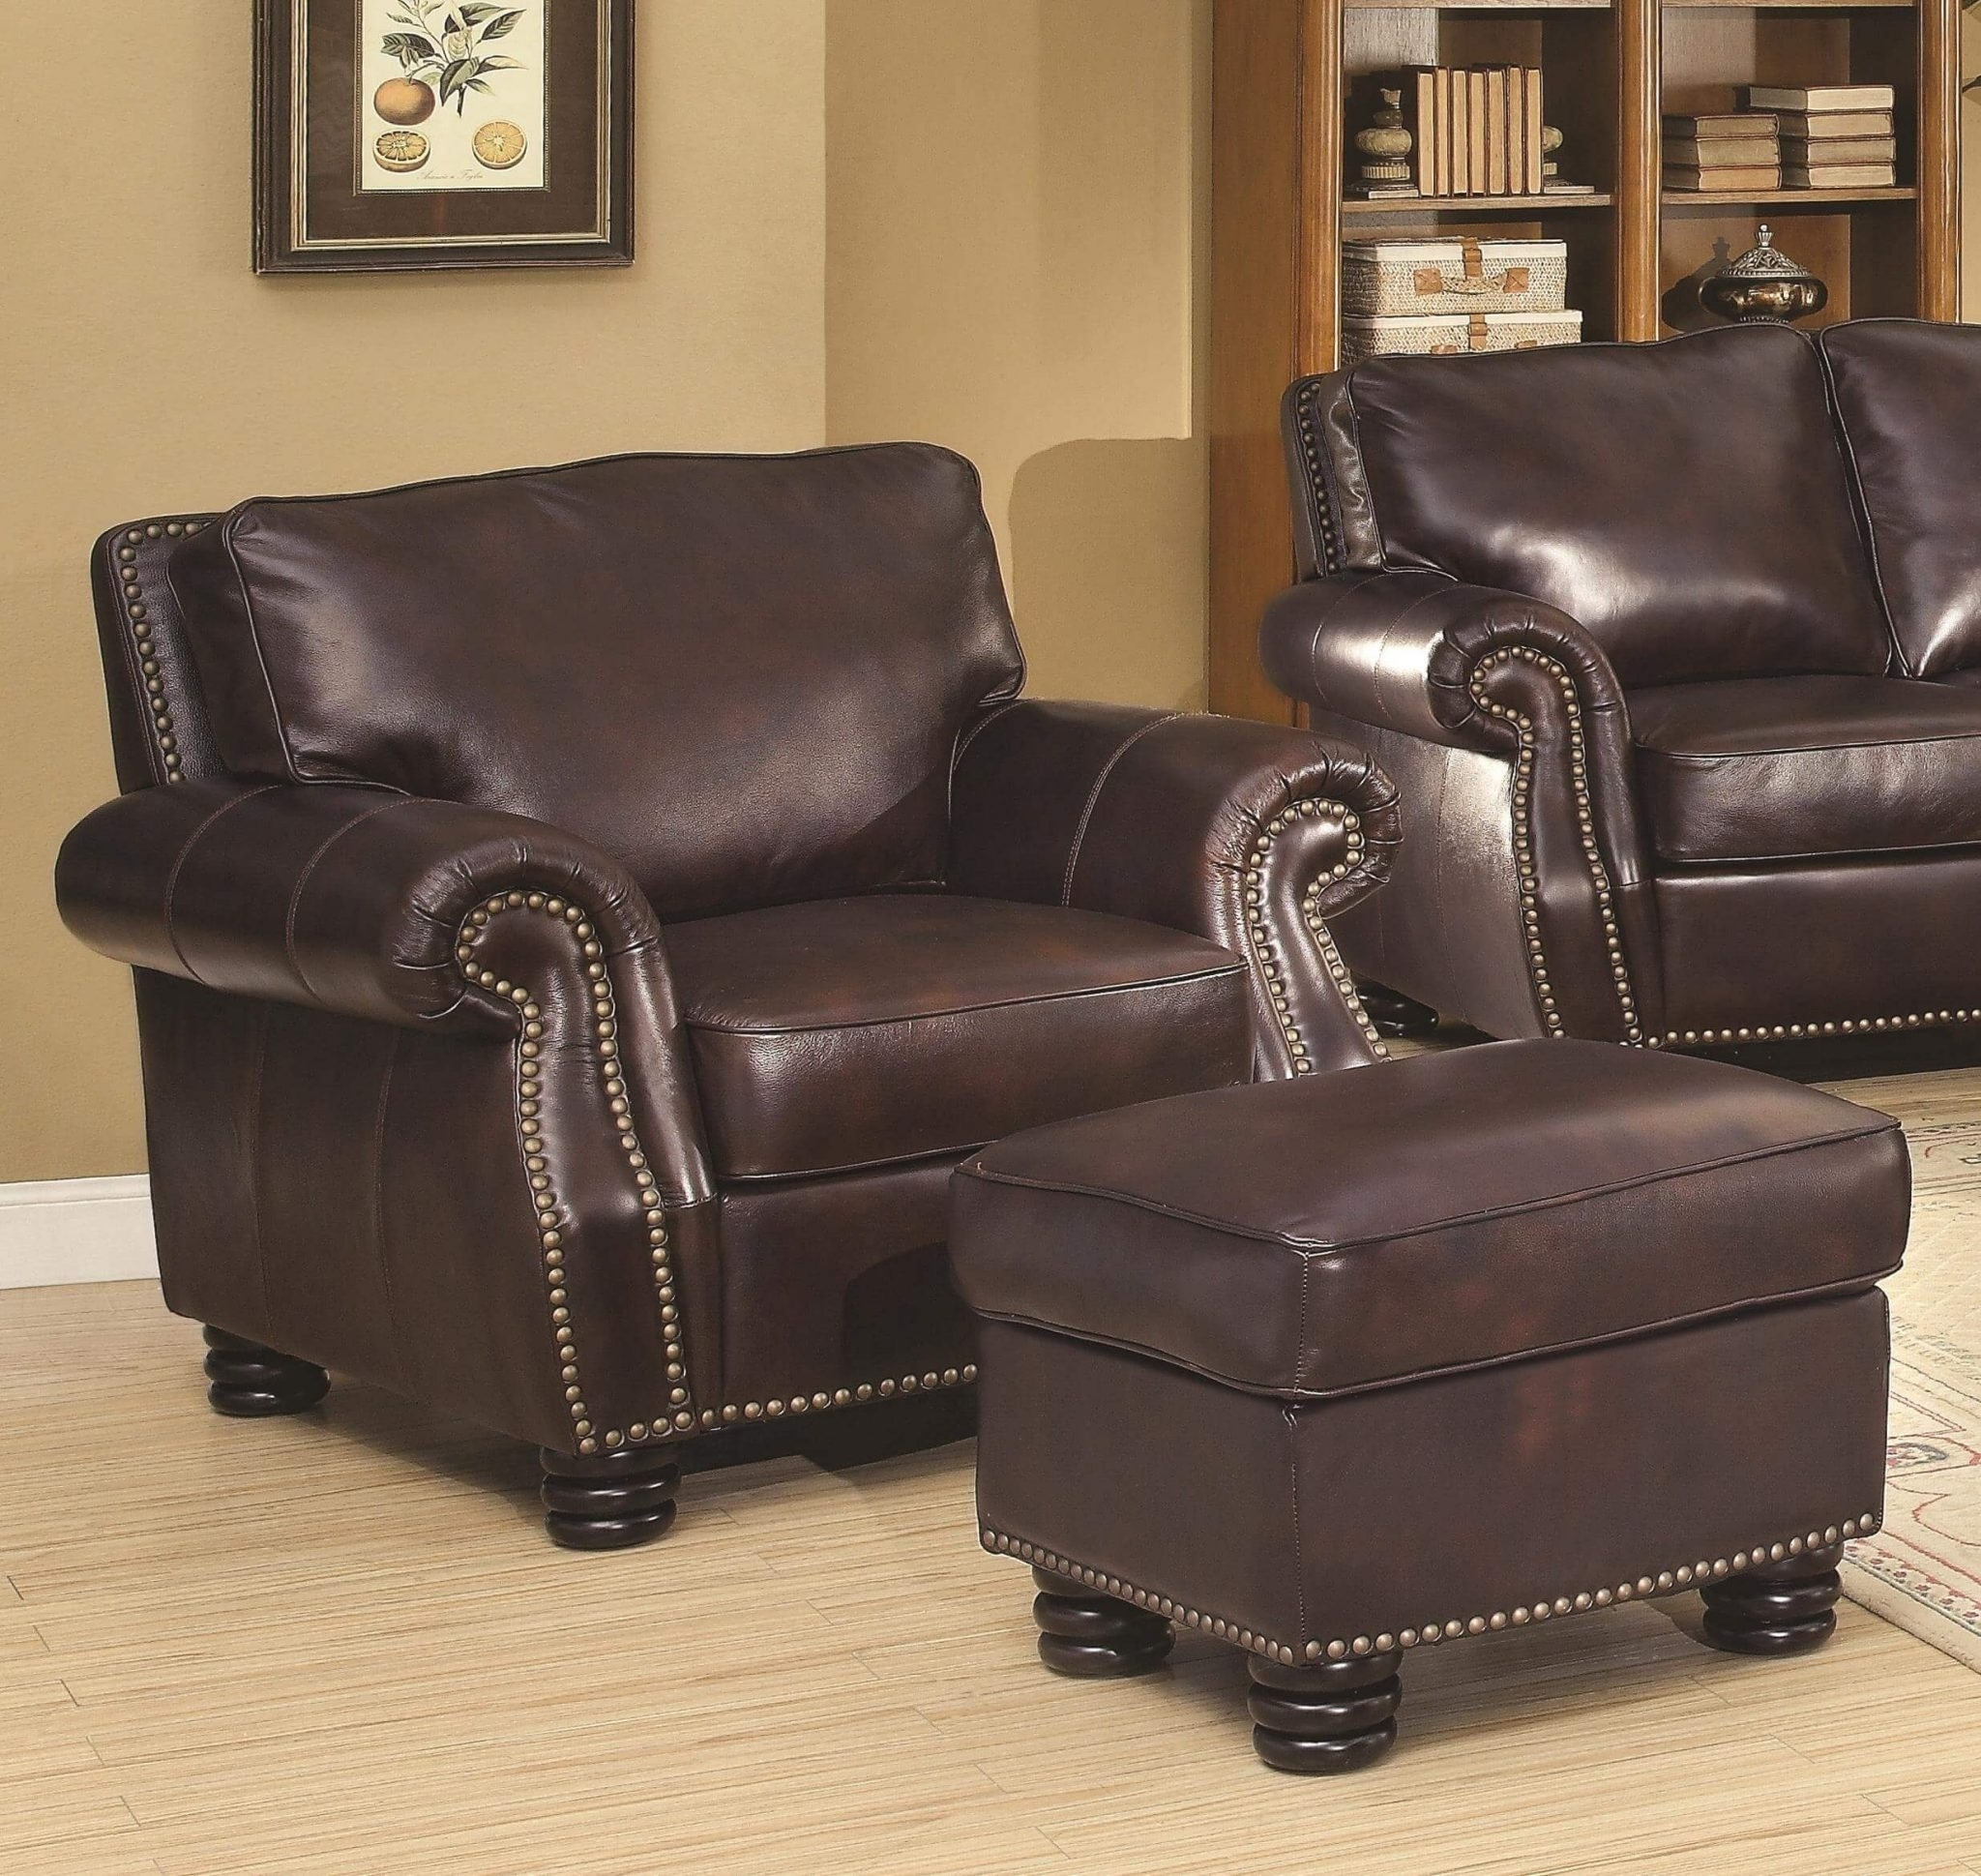 Furniture: Alluring Leather Chair And Ottoman For Cozy Home In Trendy Chairs With Ottoman (View 11 of 15)